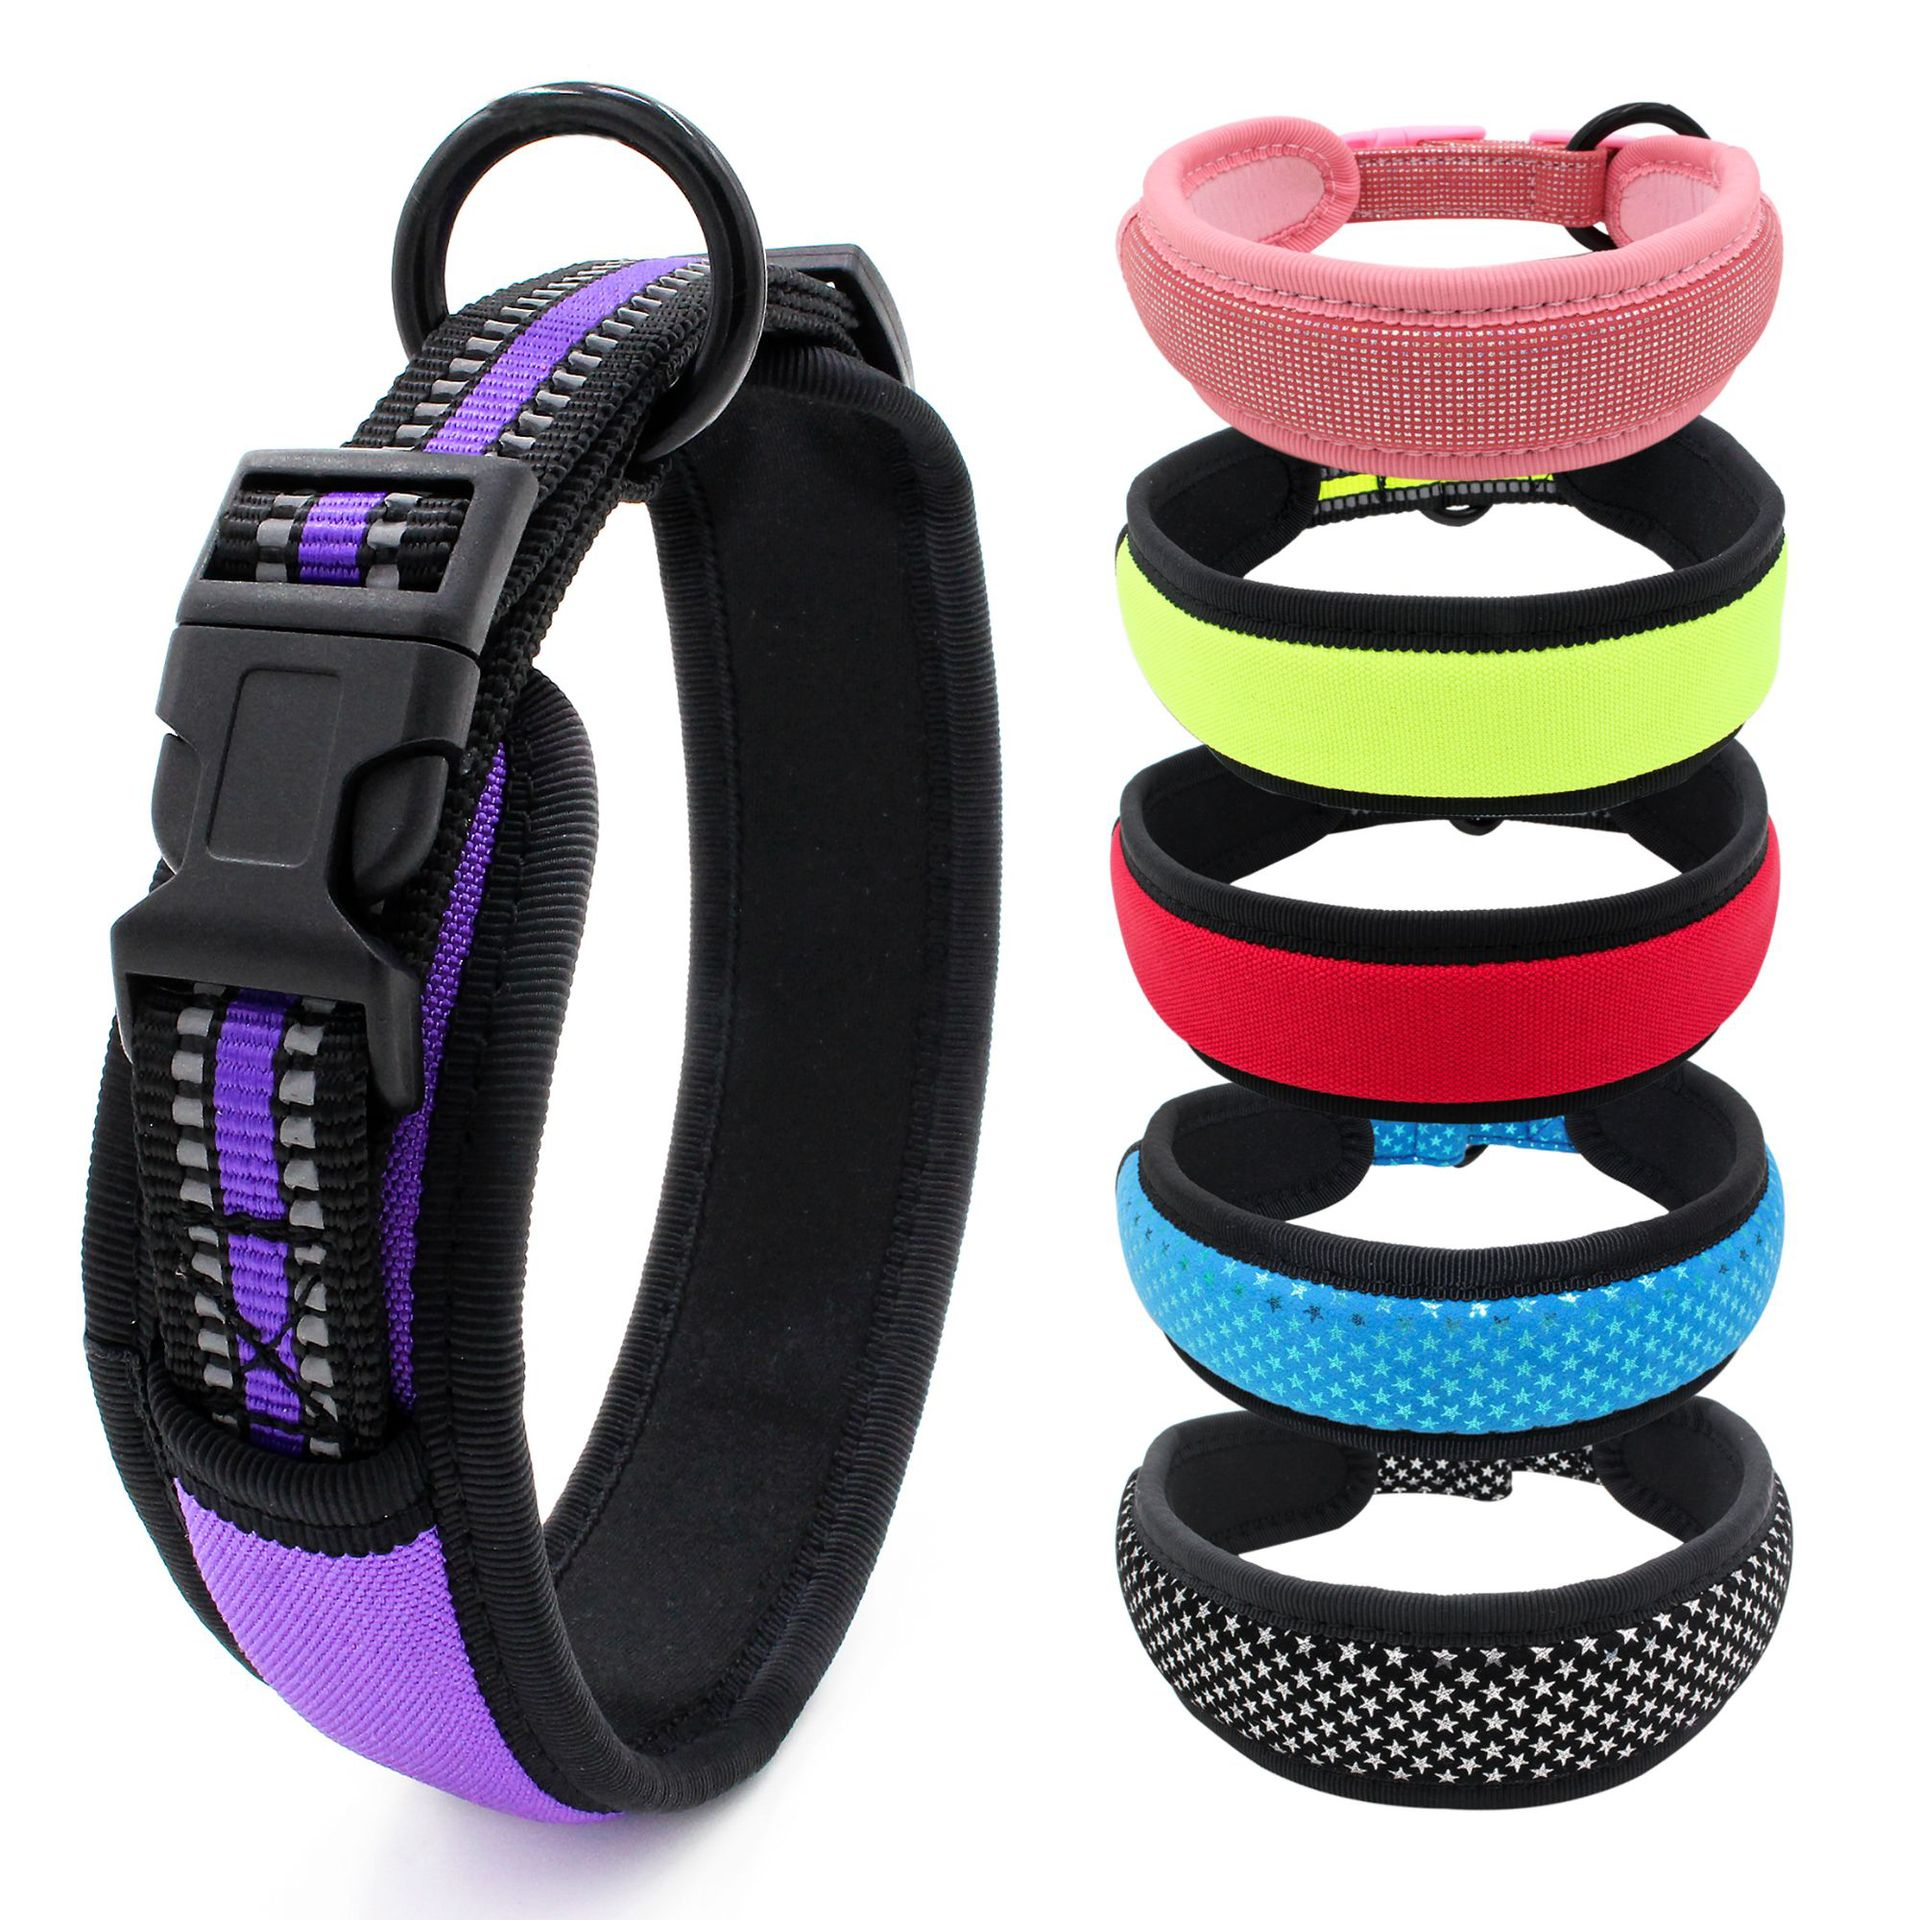 Jin Ling Jie New Style Diving Cloth Lining Pet Collar Release Buckle Bite-proof Protector Reflective Woven Tape Dog Neck Ring La